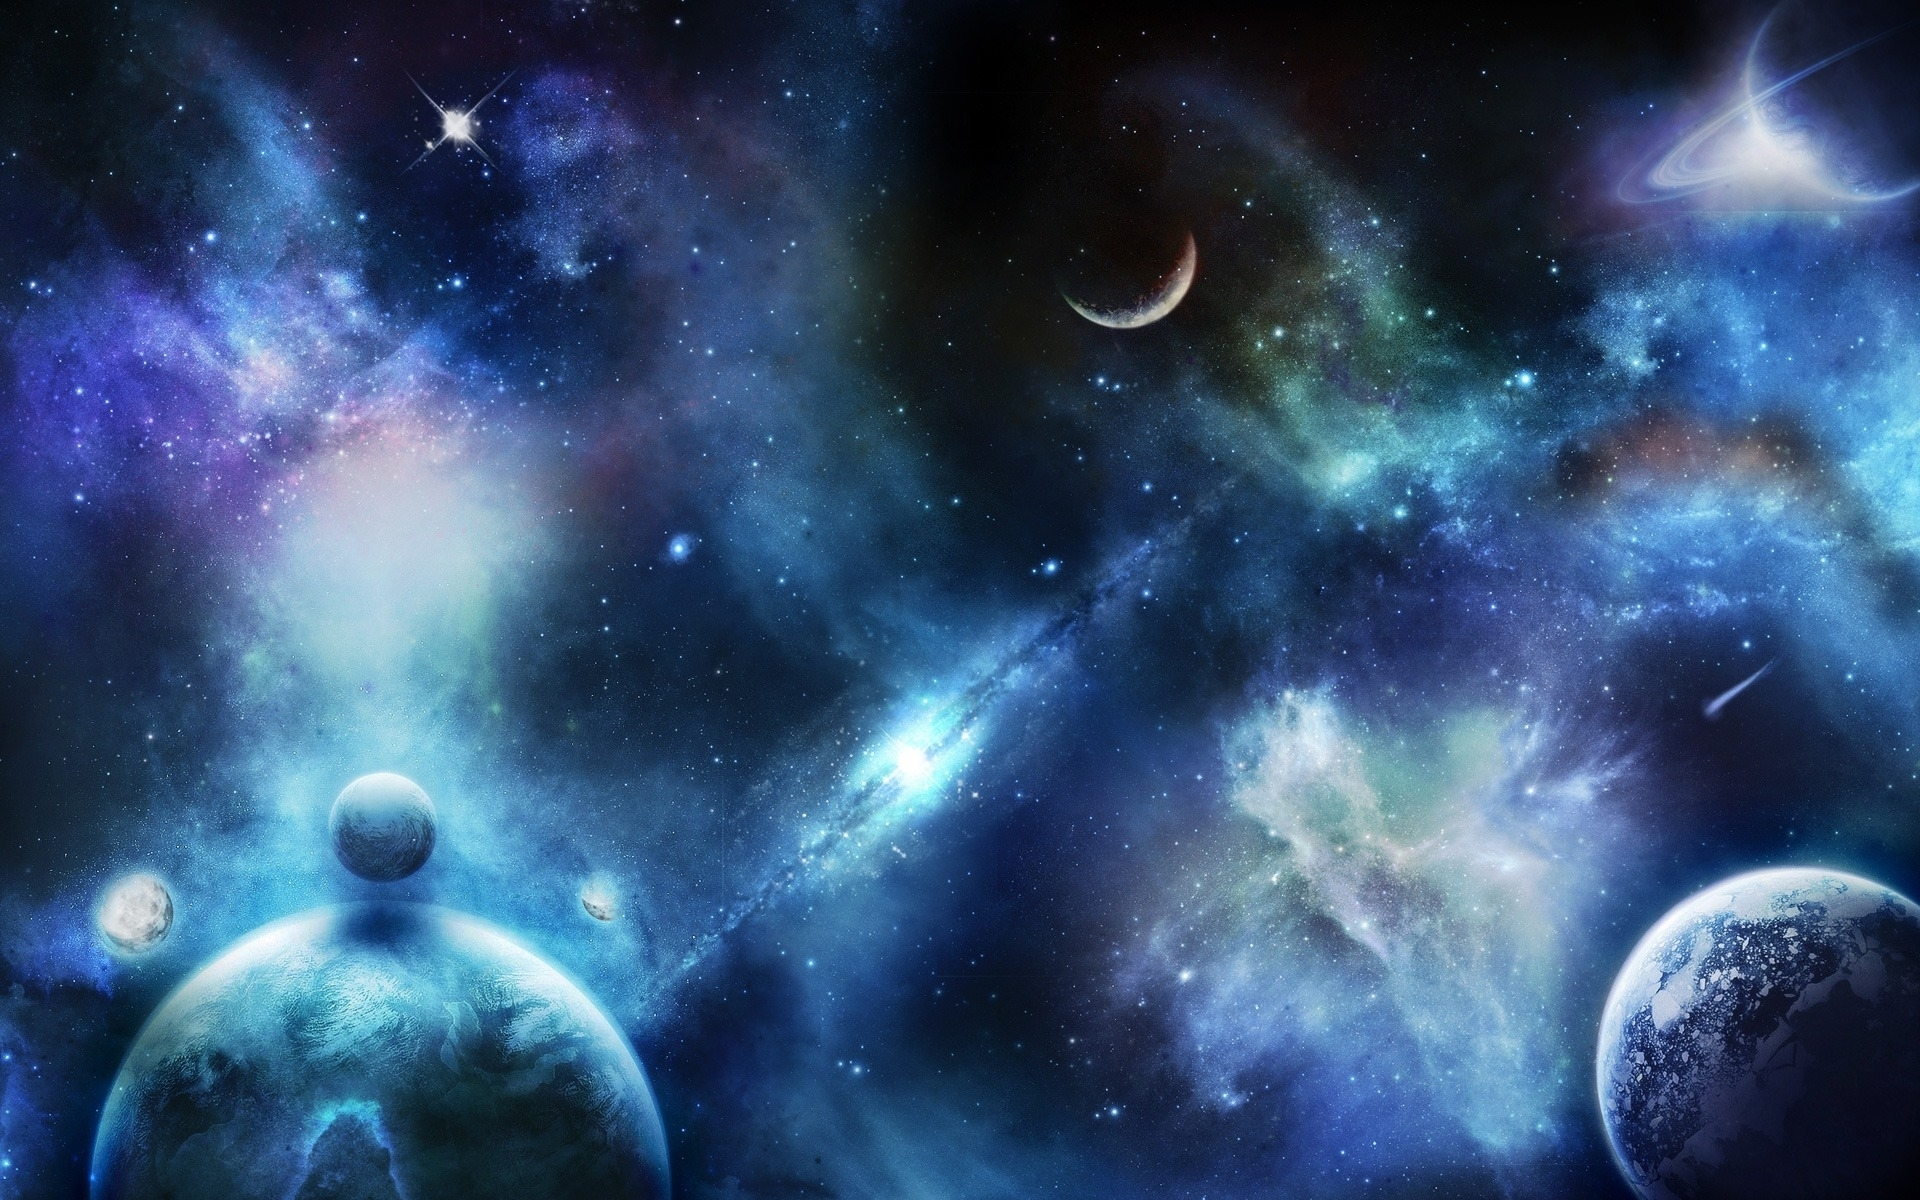 Cool Space Wallpaper 777344 1920x1200px by Alan Snowden 1920x1200